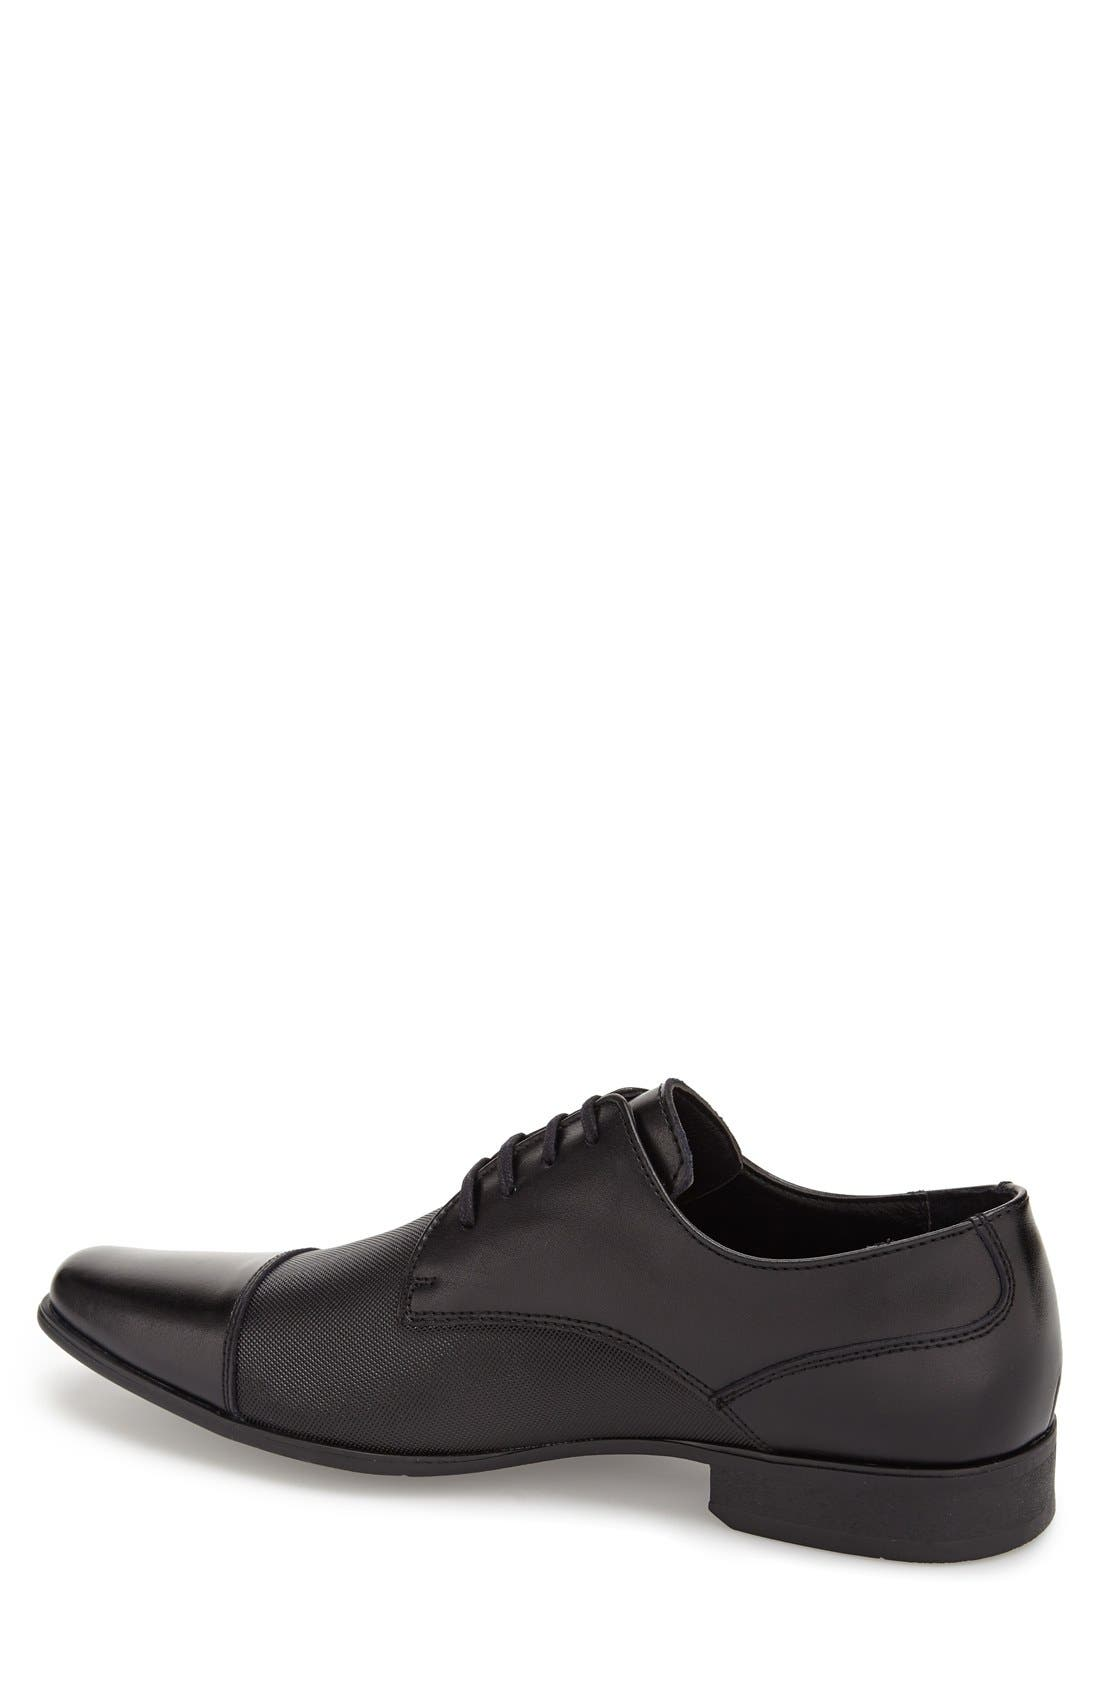 'Bram' Cap Toe Derby,                             Alternate thumbnail 2, color,                             Black